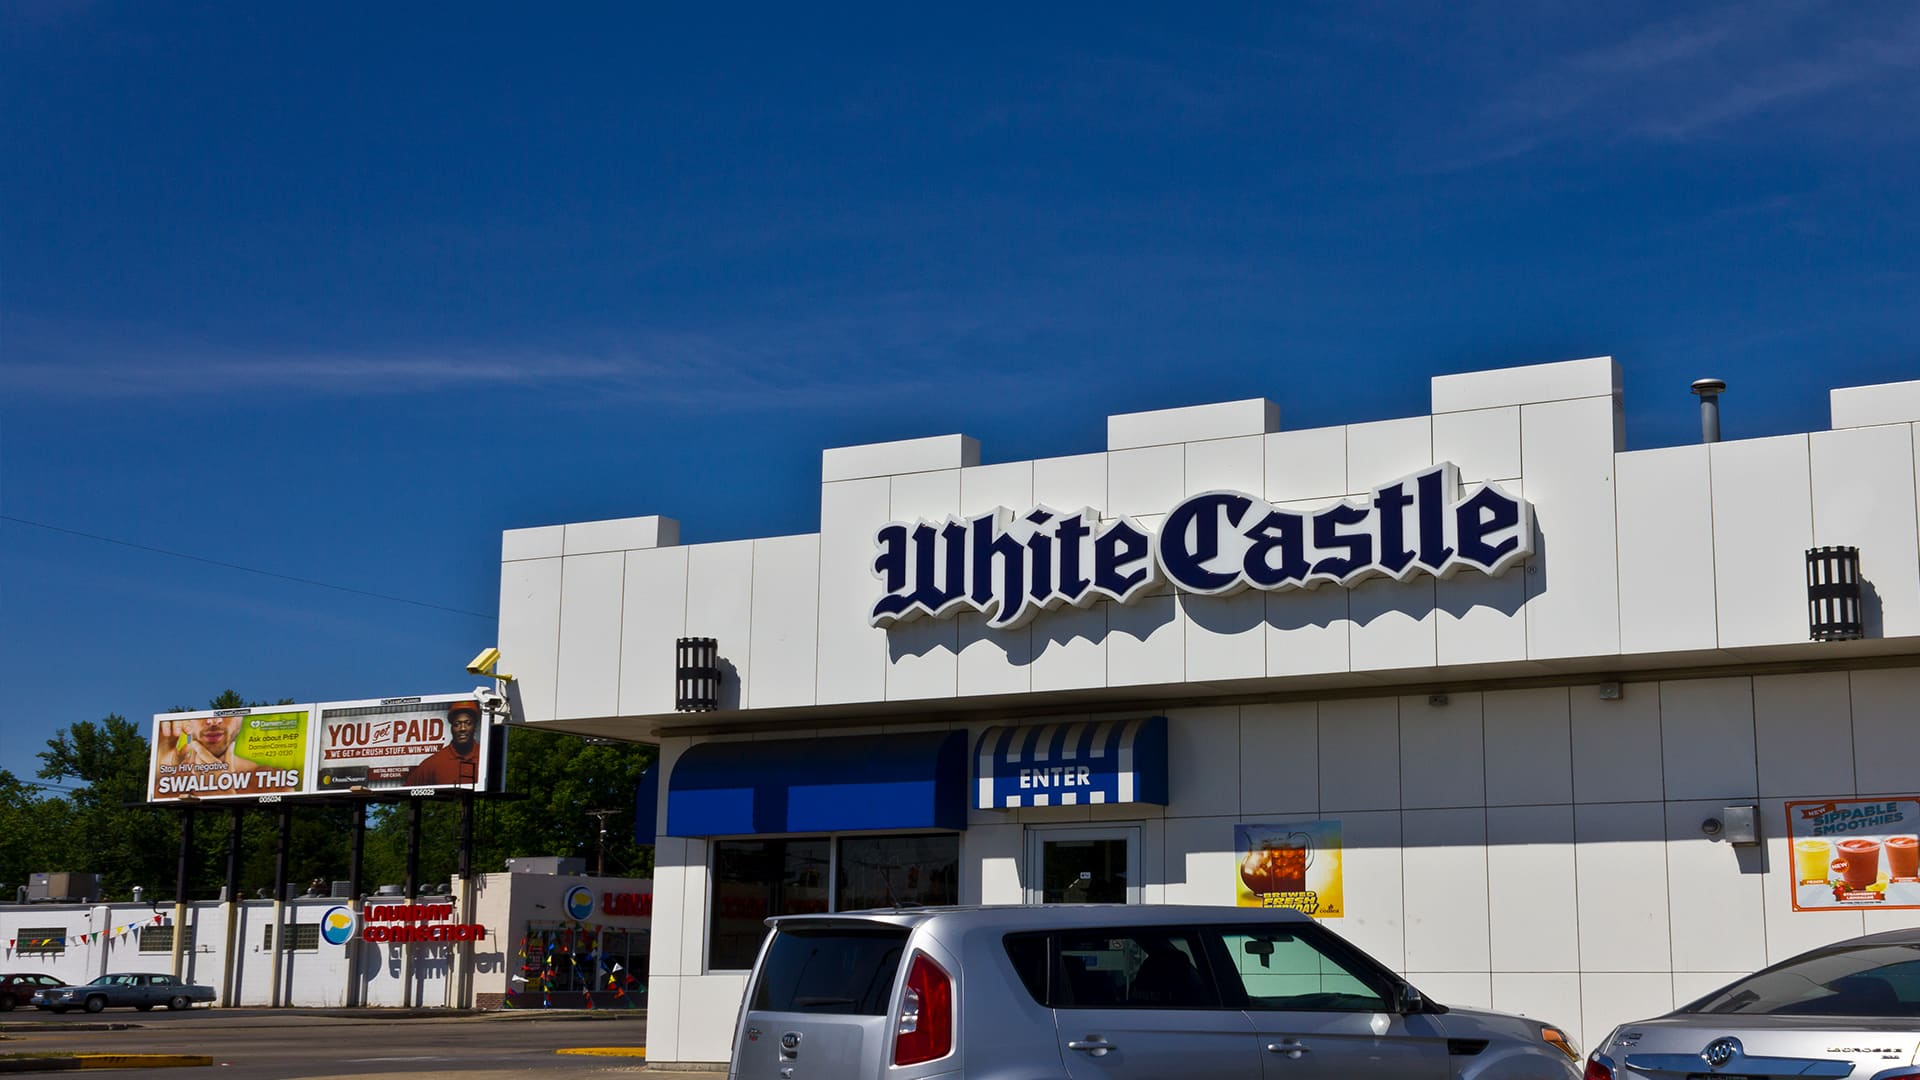 Why White Castle, America's oldest hamburger chain, stayed small